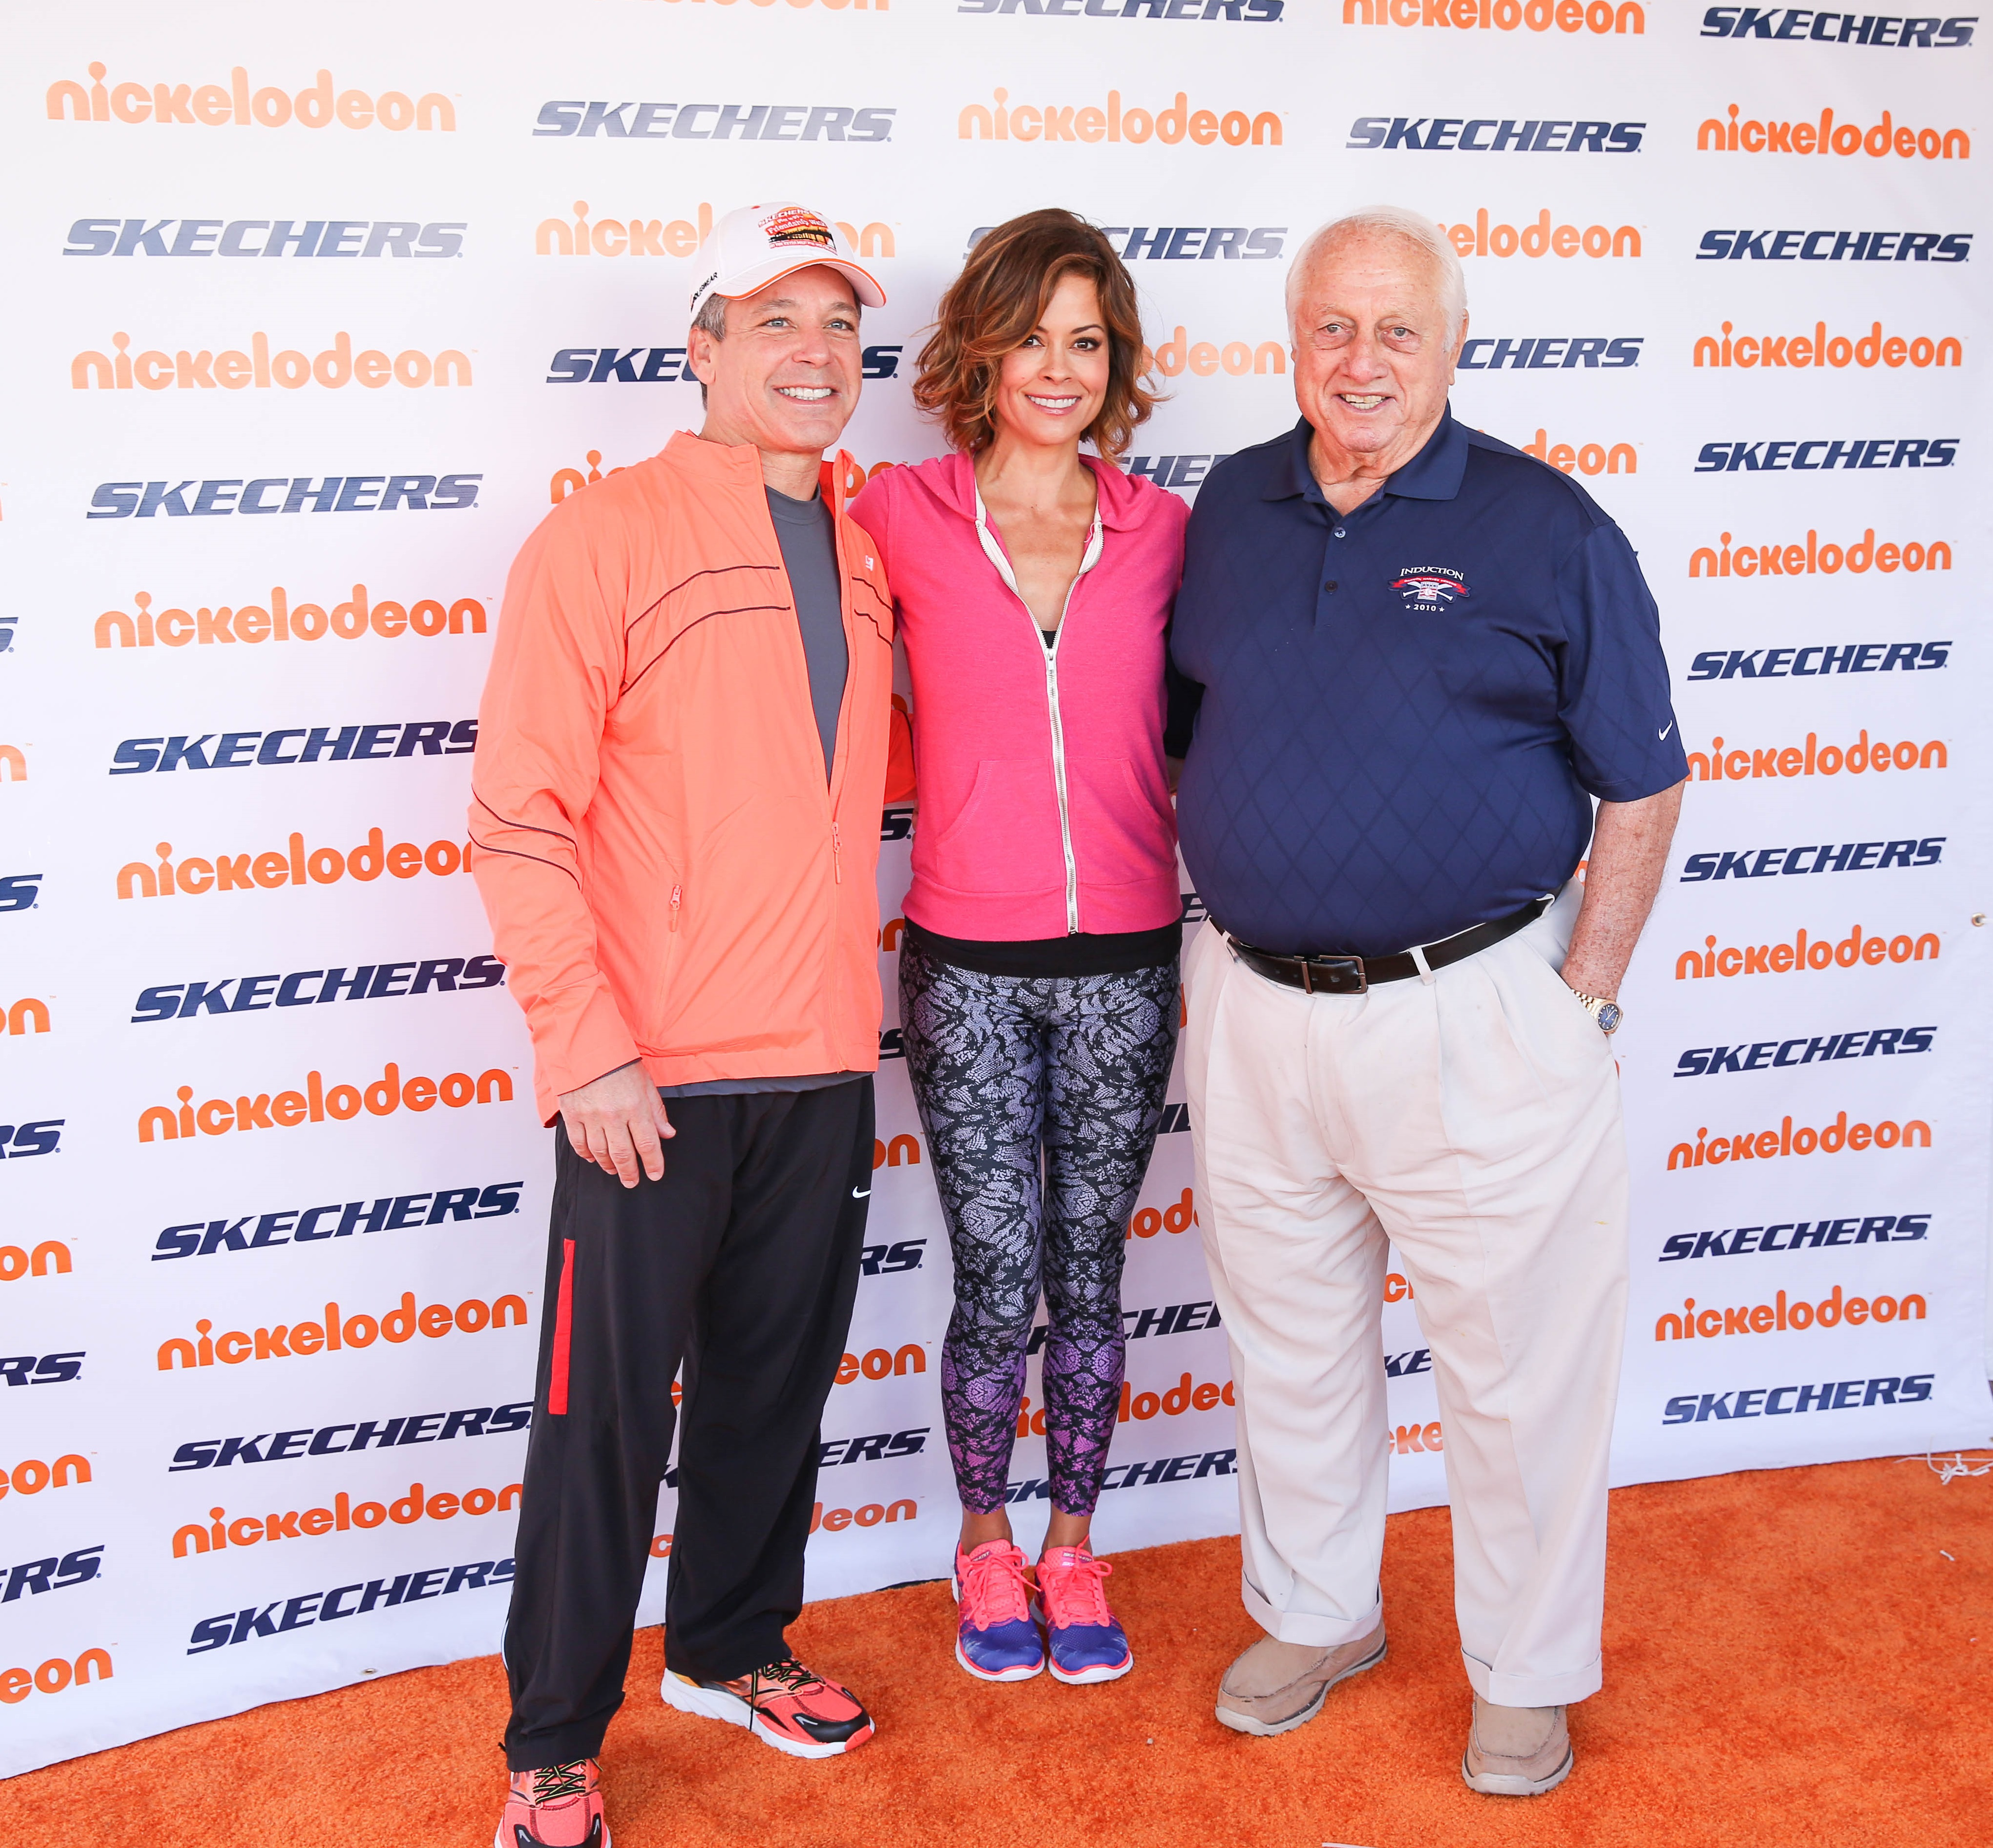 Skechers President Michael Greenberg, television personality Brooke Burke-Charvet and former Dodgers Manager Tommy Lasorda at the 2014 Skechers Pier to Pier Friendship Walk. Photo courtesy of Skechers Foundation